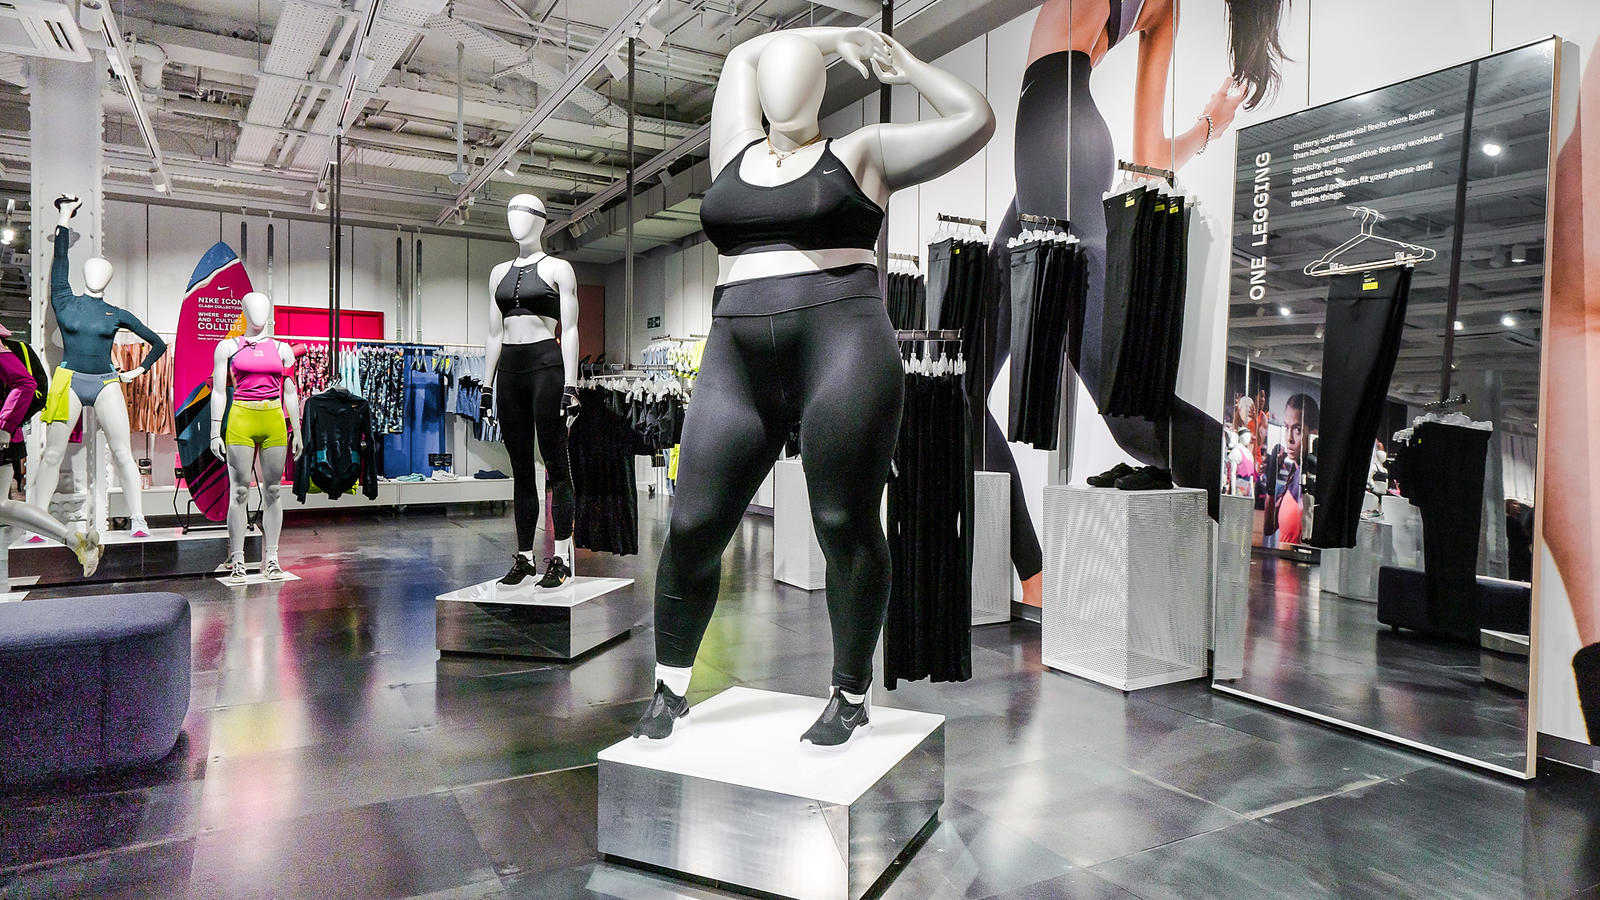 nike-events:-june-2019-—-niketown-london's-new-women's-floor